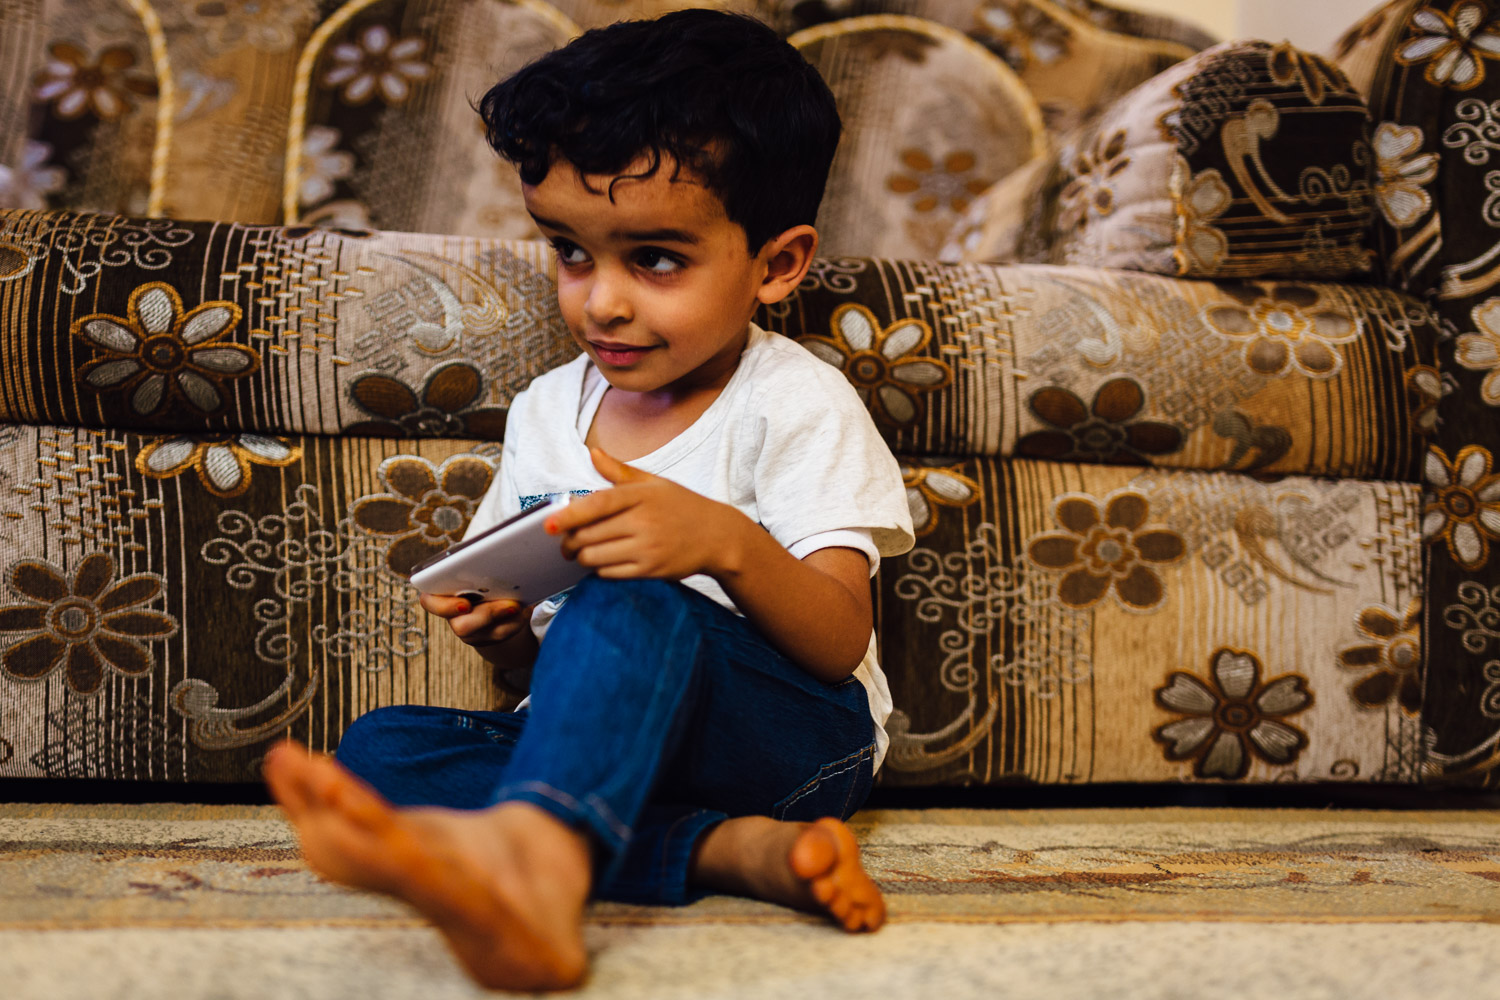 Child-Boy-Modern-Oman-Daniel-Durazo-Photography-Durazophotography-1